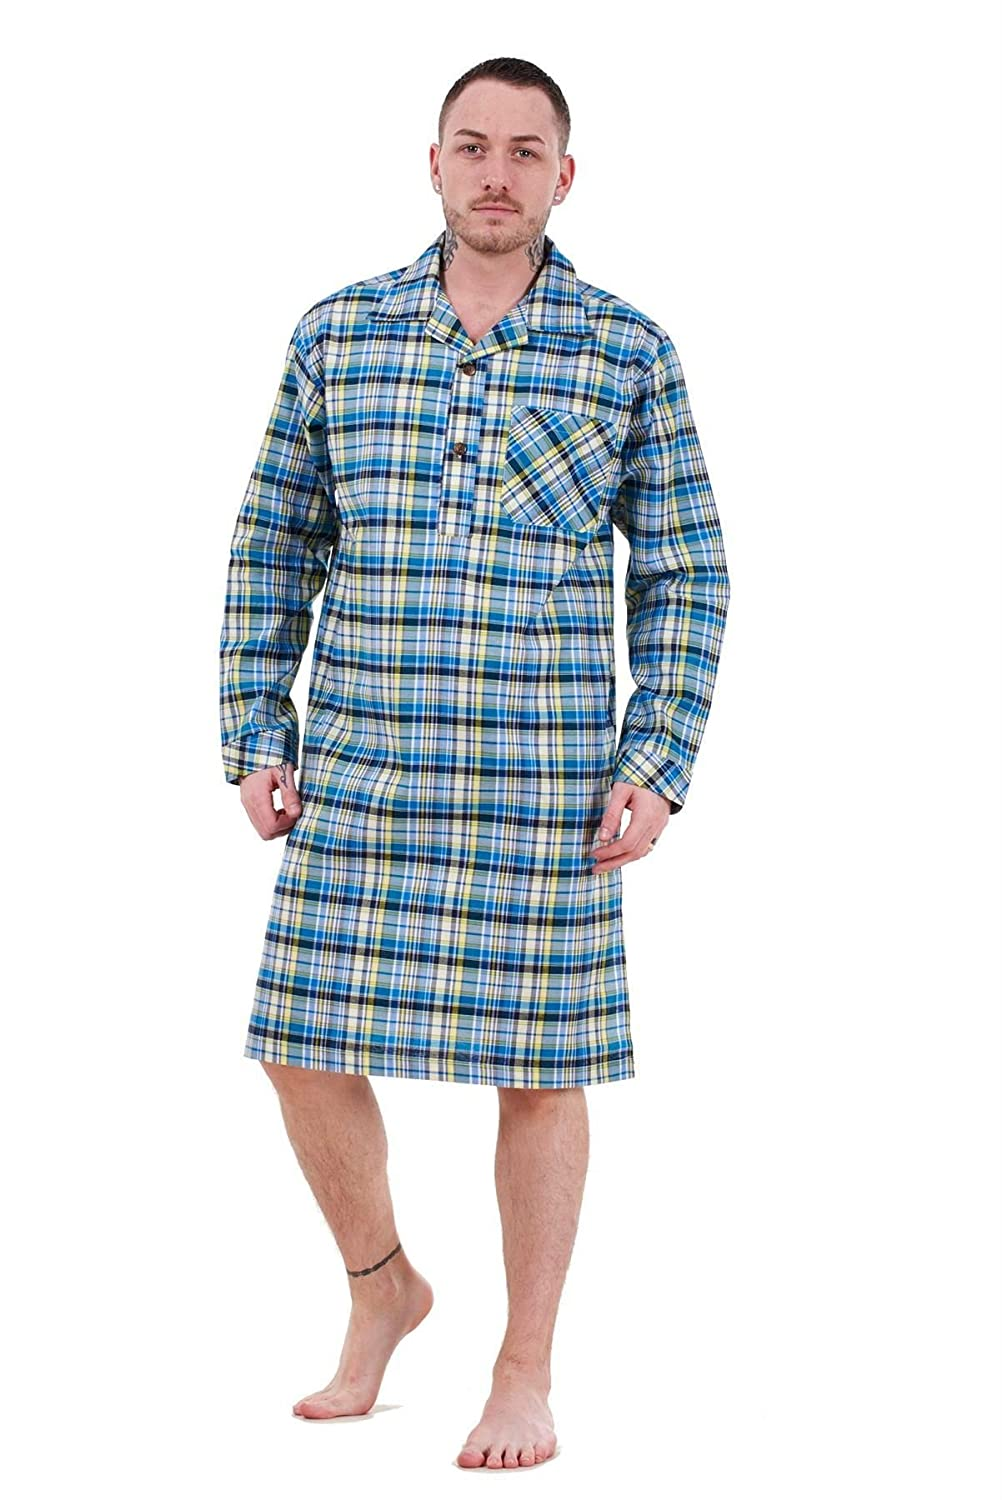 Bay eCom UK Mens Nightshirts Woven Check Cotton Blend Loungewear Regular Big Size M to 5XL Does not Apply